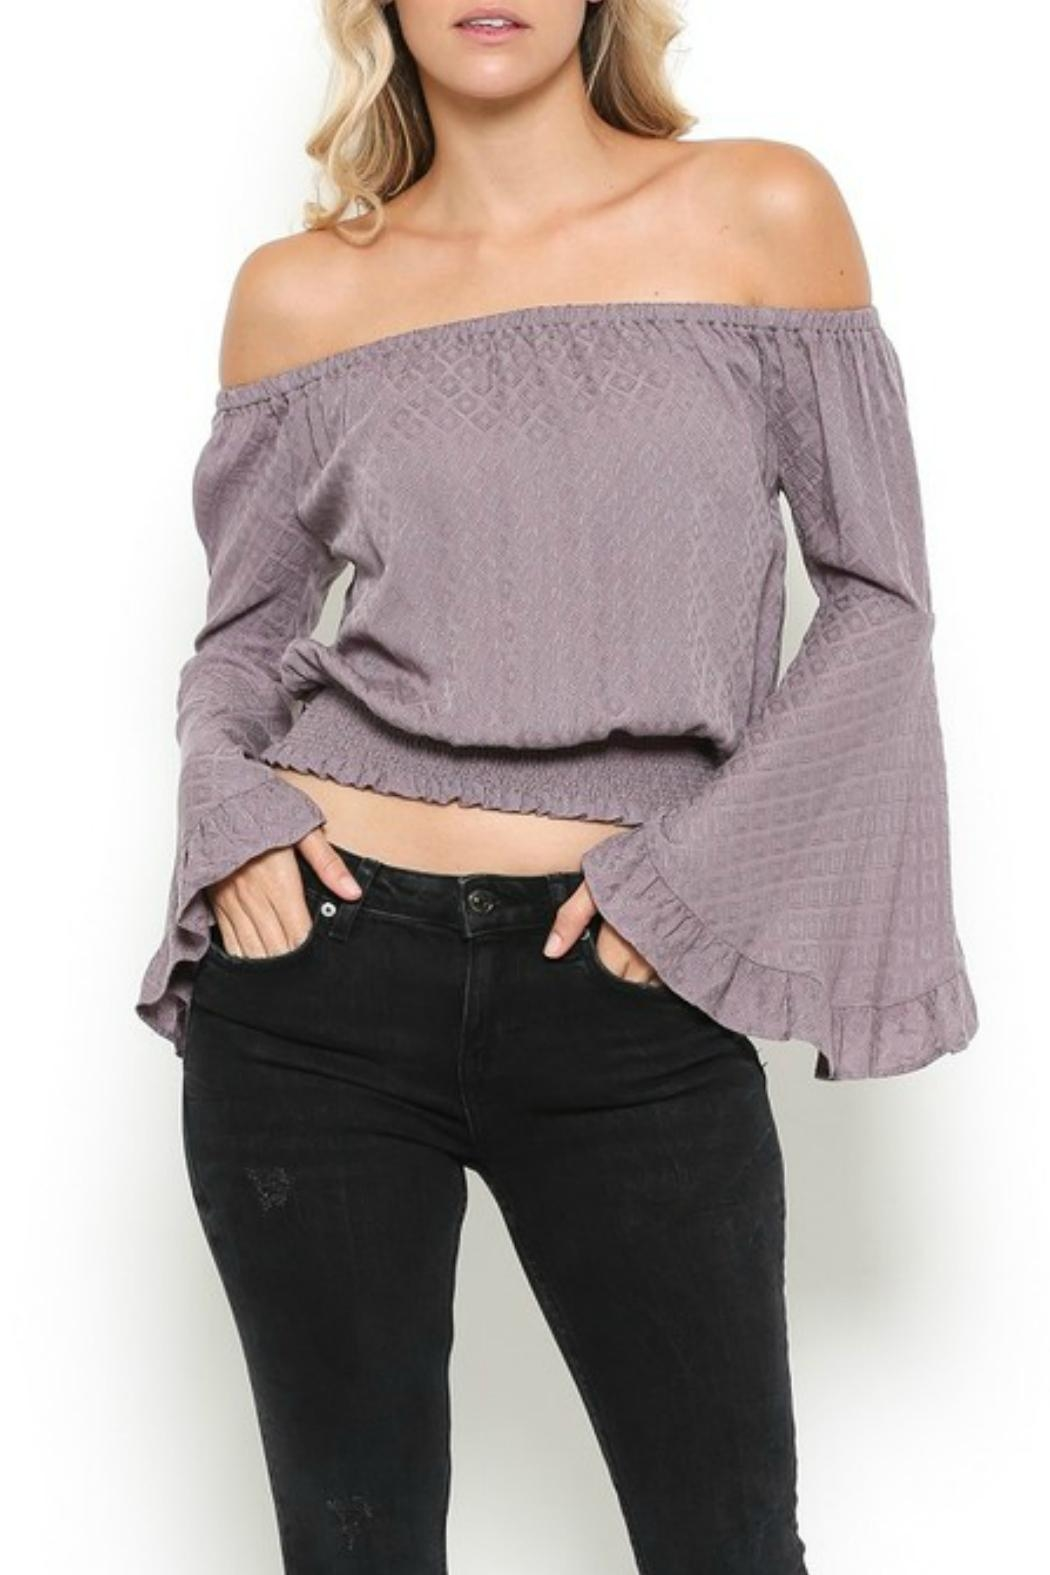 Illa Illa Lavender Off-The-Shoulder Top - Main Image